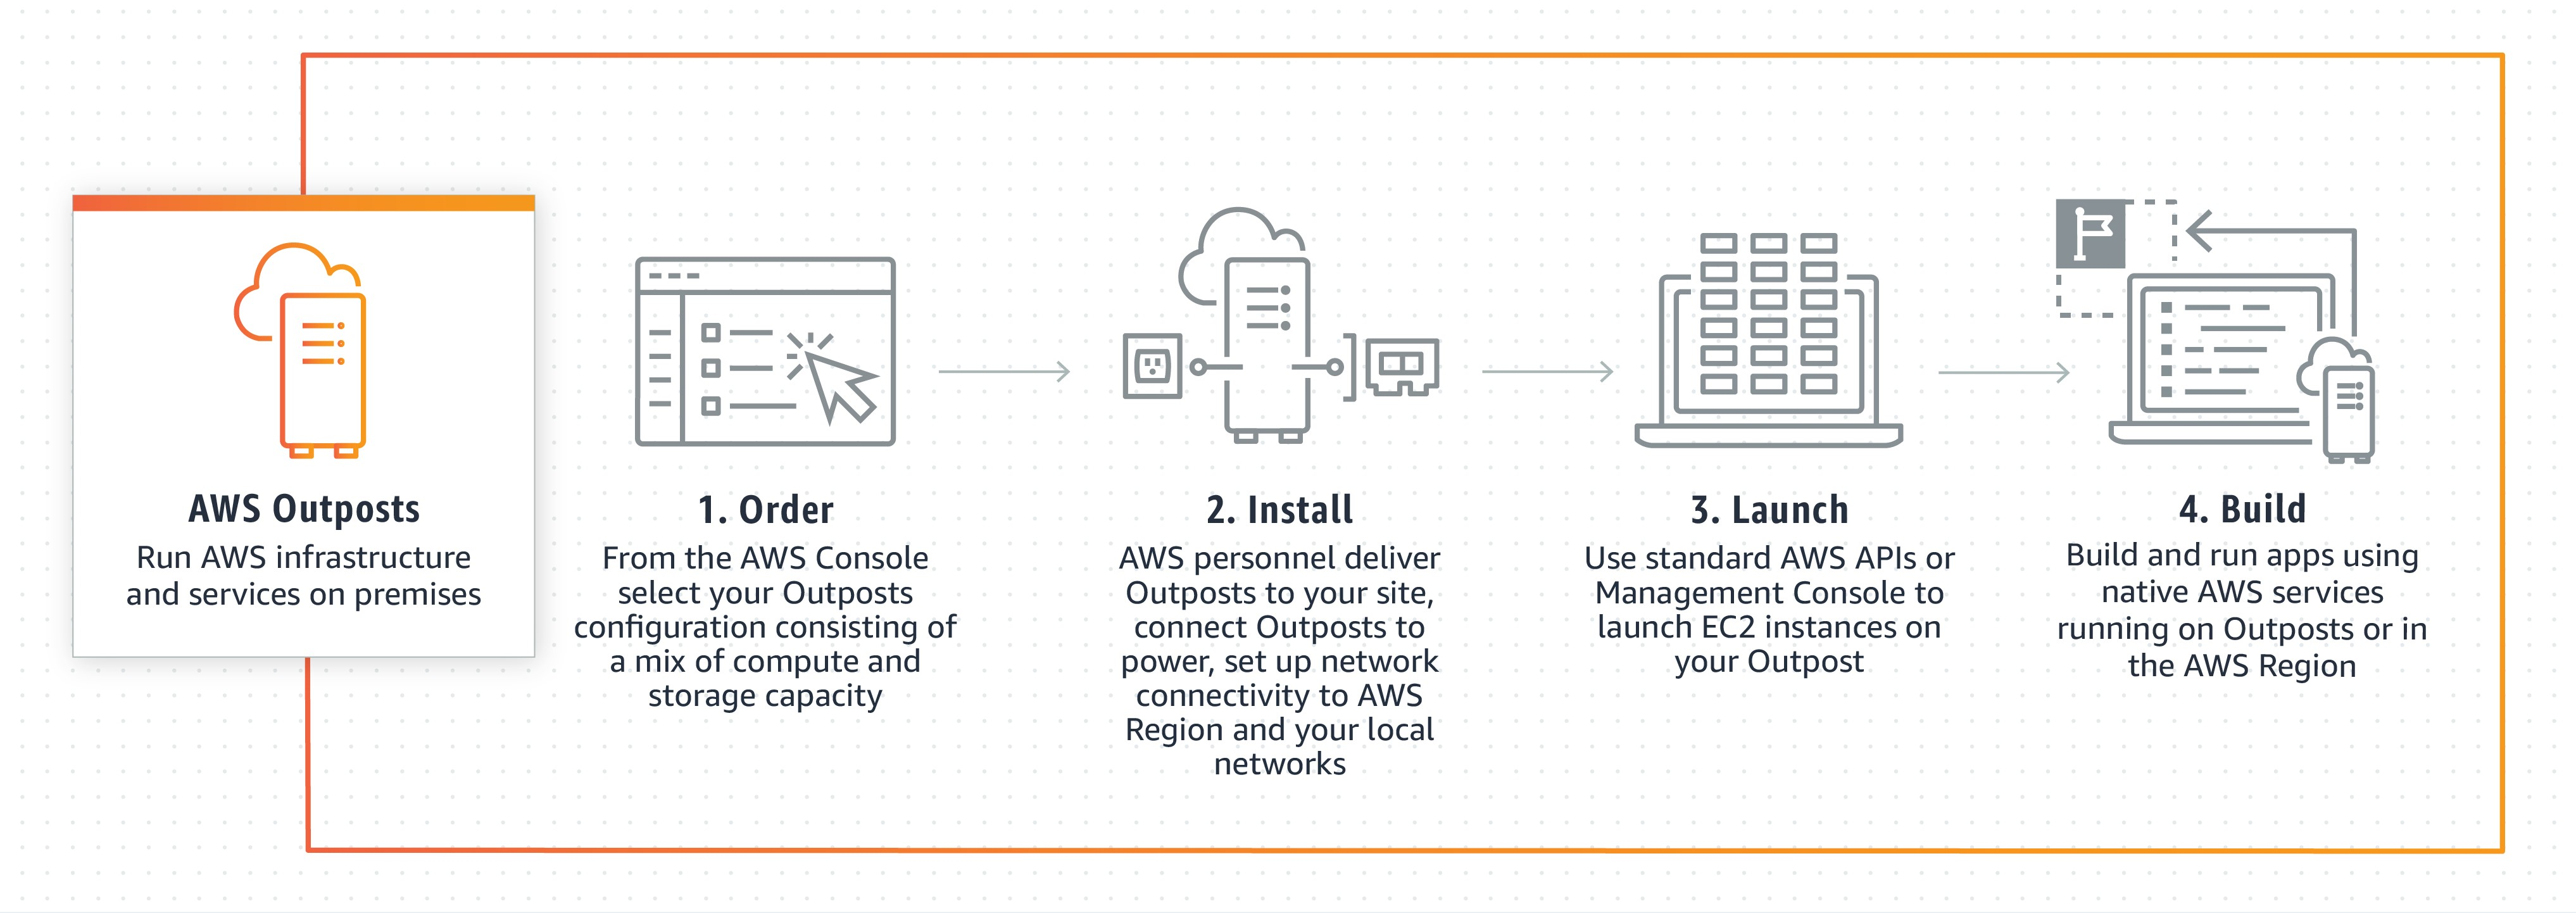 aws-outposts-3